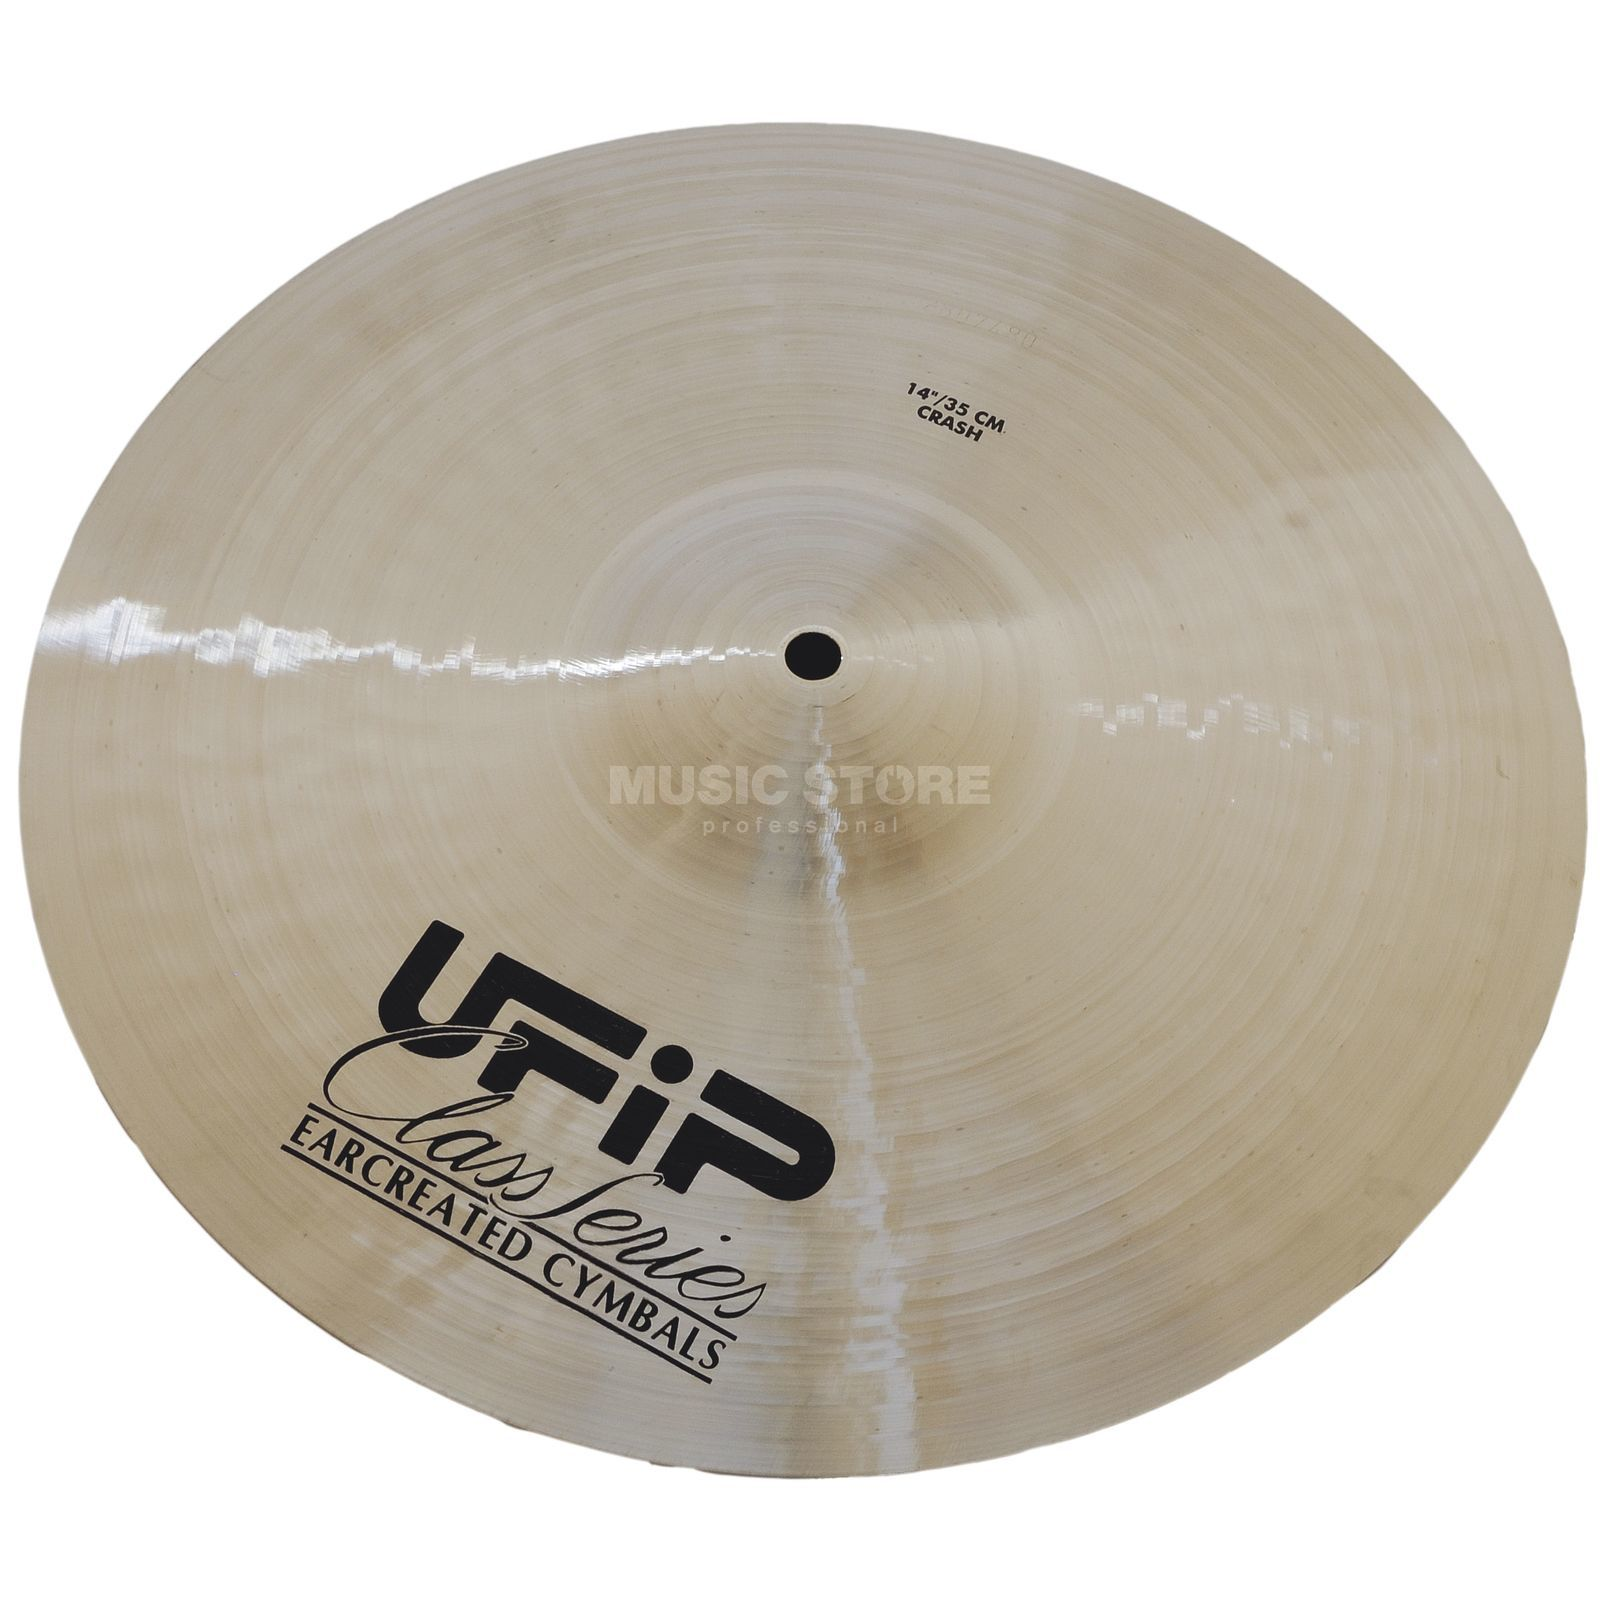 "Ufip Class Heavy Crash 18"", Natural Finish Immagine prodotto"